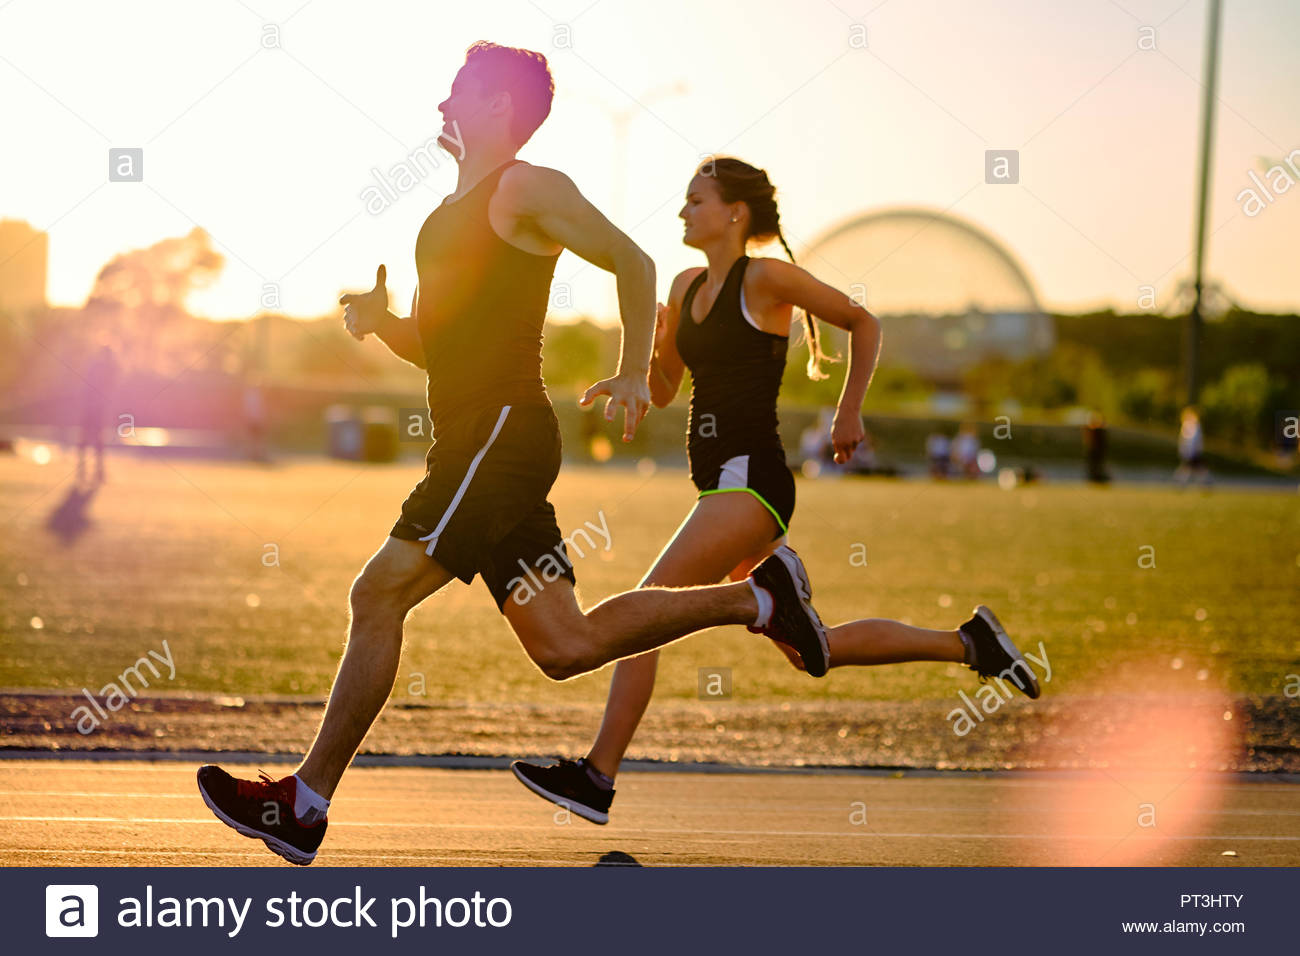 Sprinters racing around track during workout with sunset behind, Montreal, Quebec, Canada - Stock Image